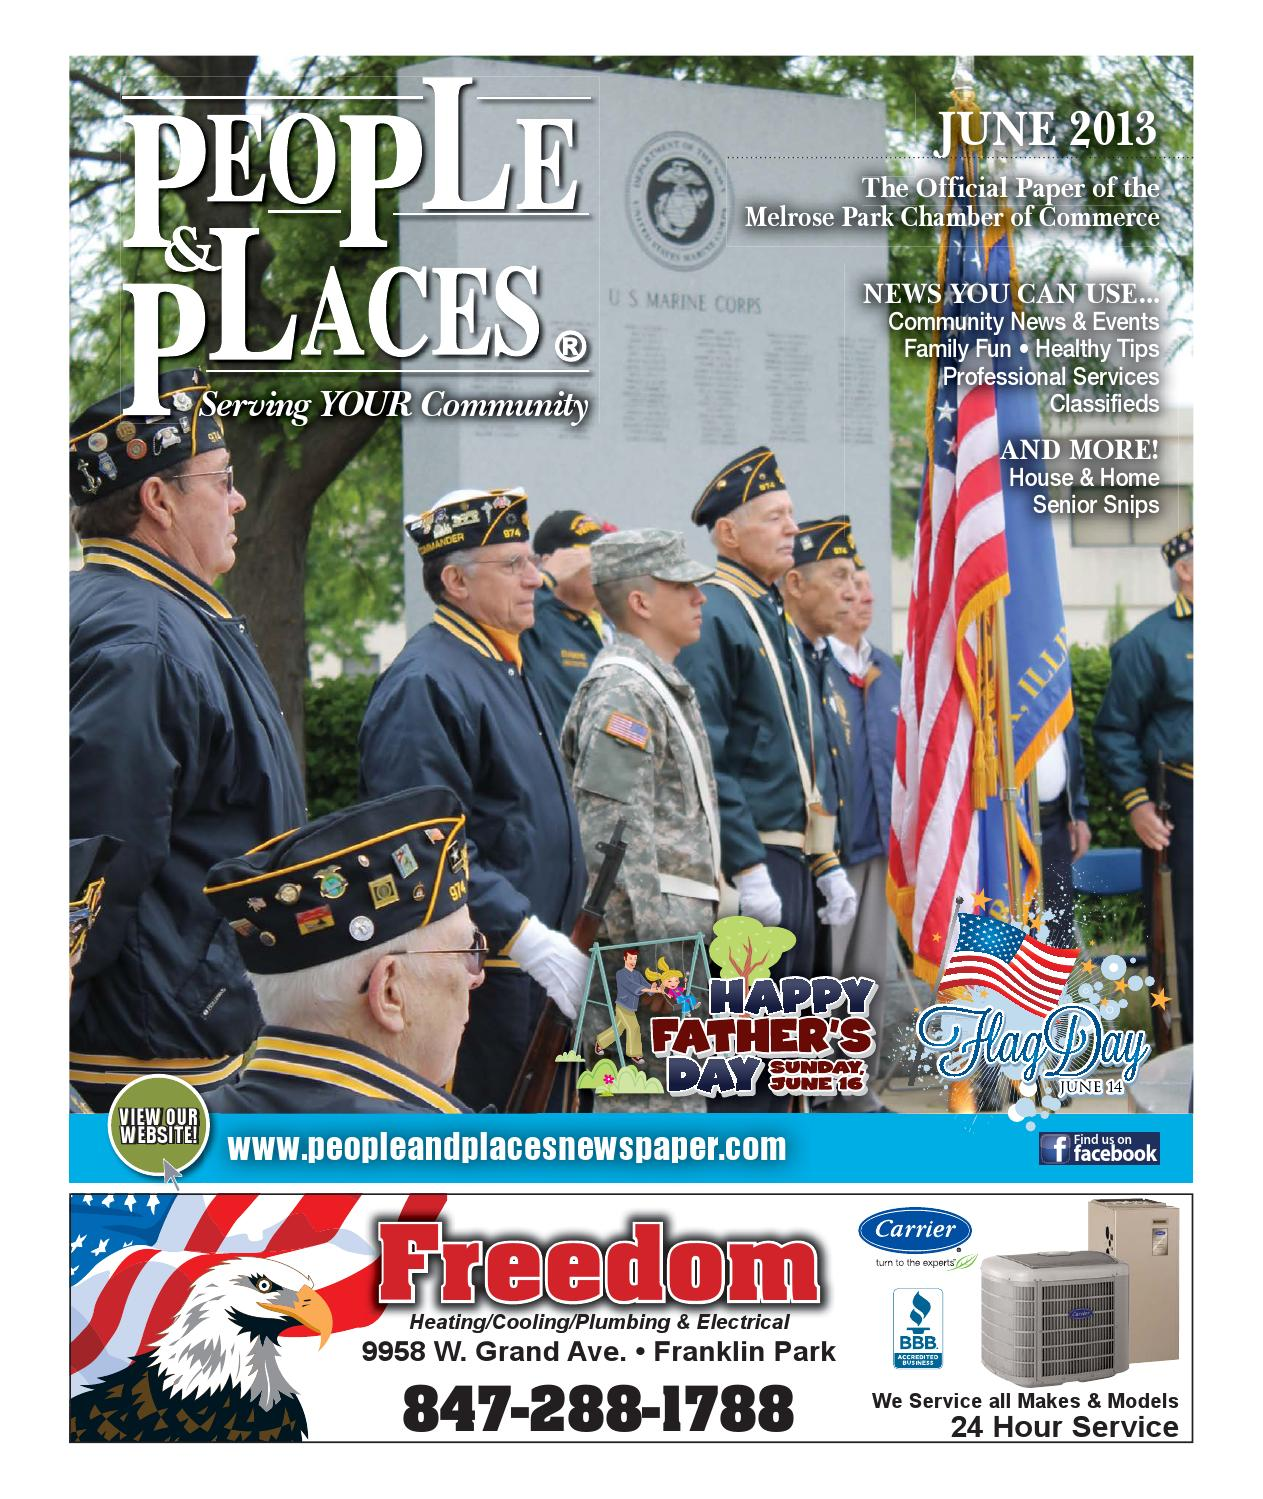 June 2013 People & Places Newspaper by Jennifer Creative - issuu